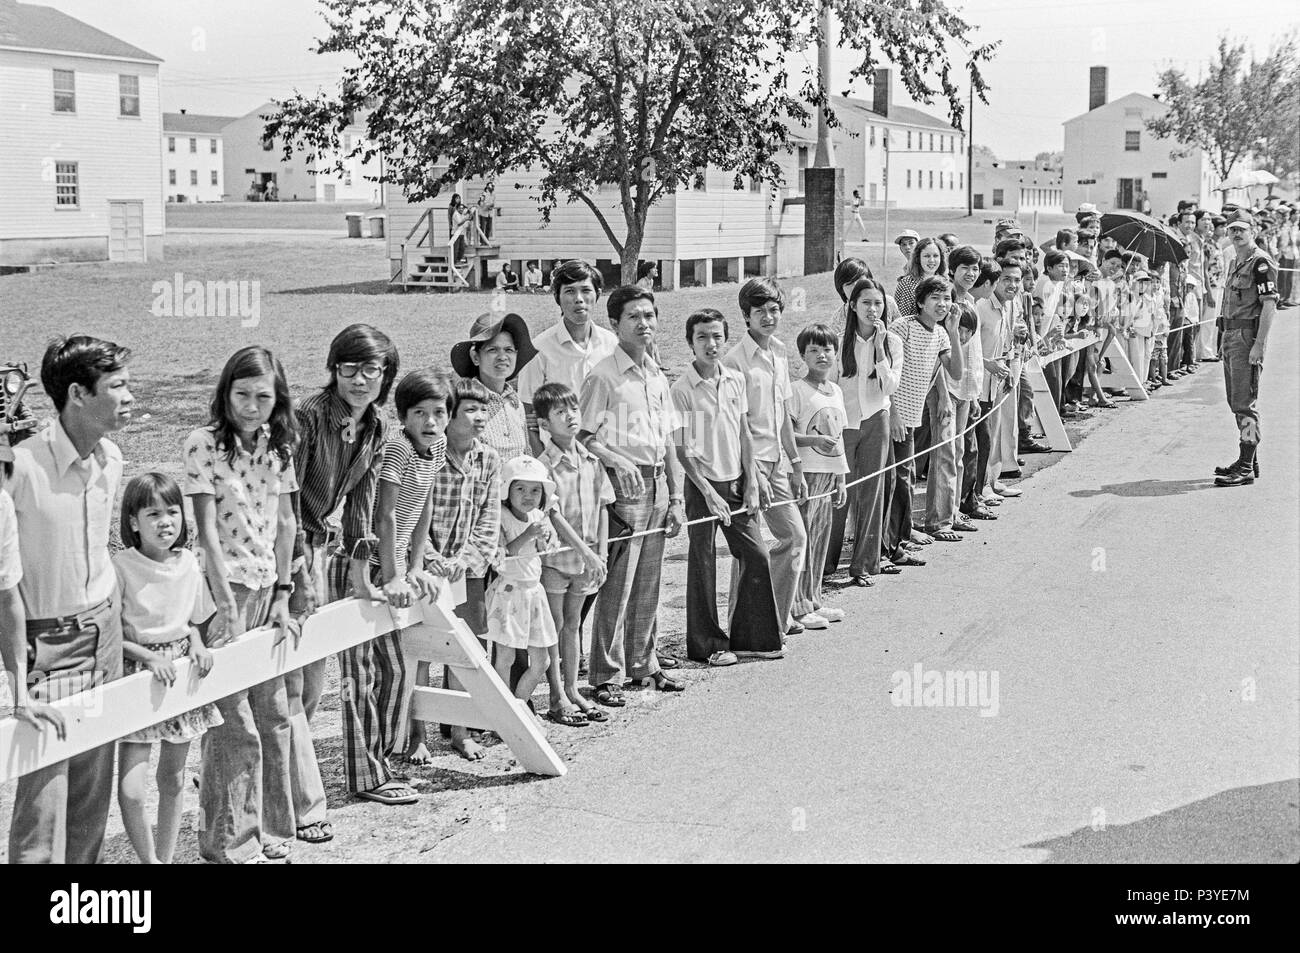 FORT SMITH, AR, USA - AUGUST 10, 1975 -- A military policeman watches as a  line of newly-arrived Vietnamese refugees stand and wait for the passing of President Gerald Ford.  The president is to be touring the Fort Chaffee Vietnamese refugee center and welcoming the evacuated South Vietnamese to the United States.  Behind the people stands rows of the barracks buildings that housed the refugees. - Stock Image